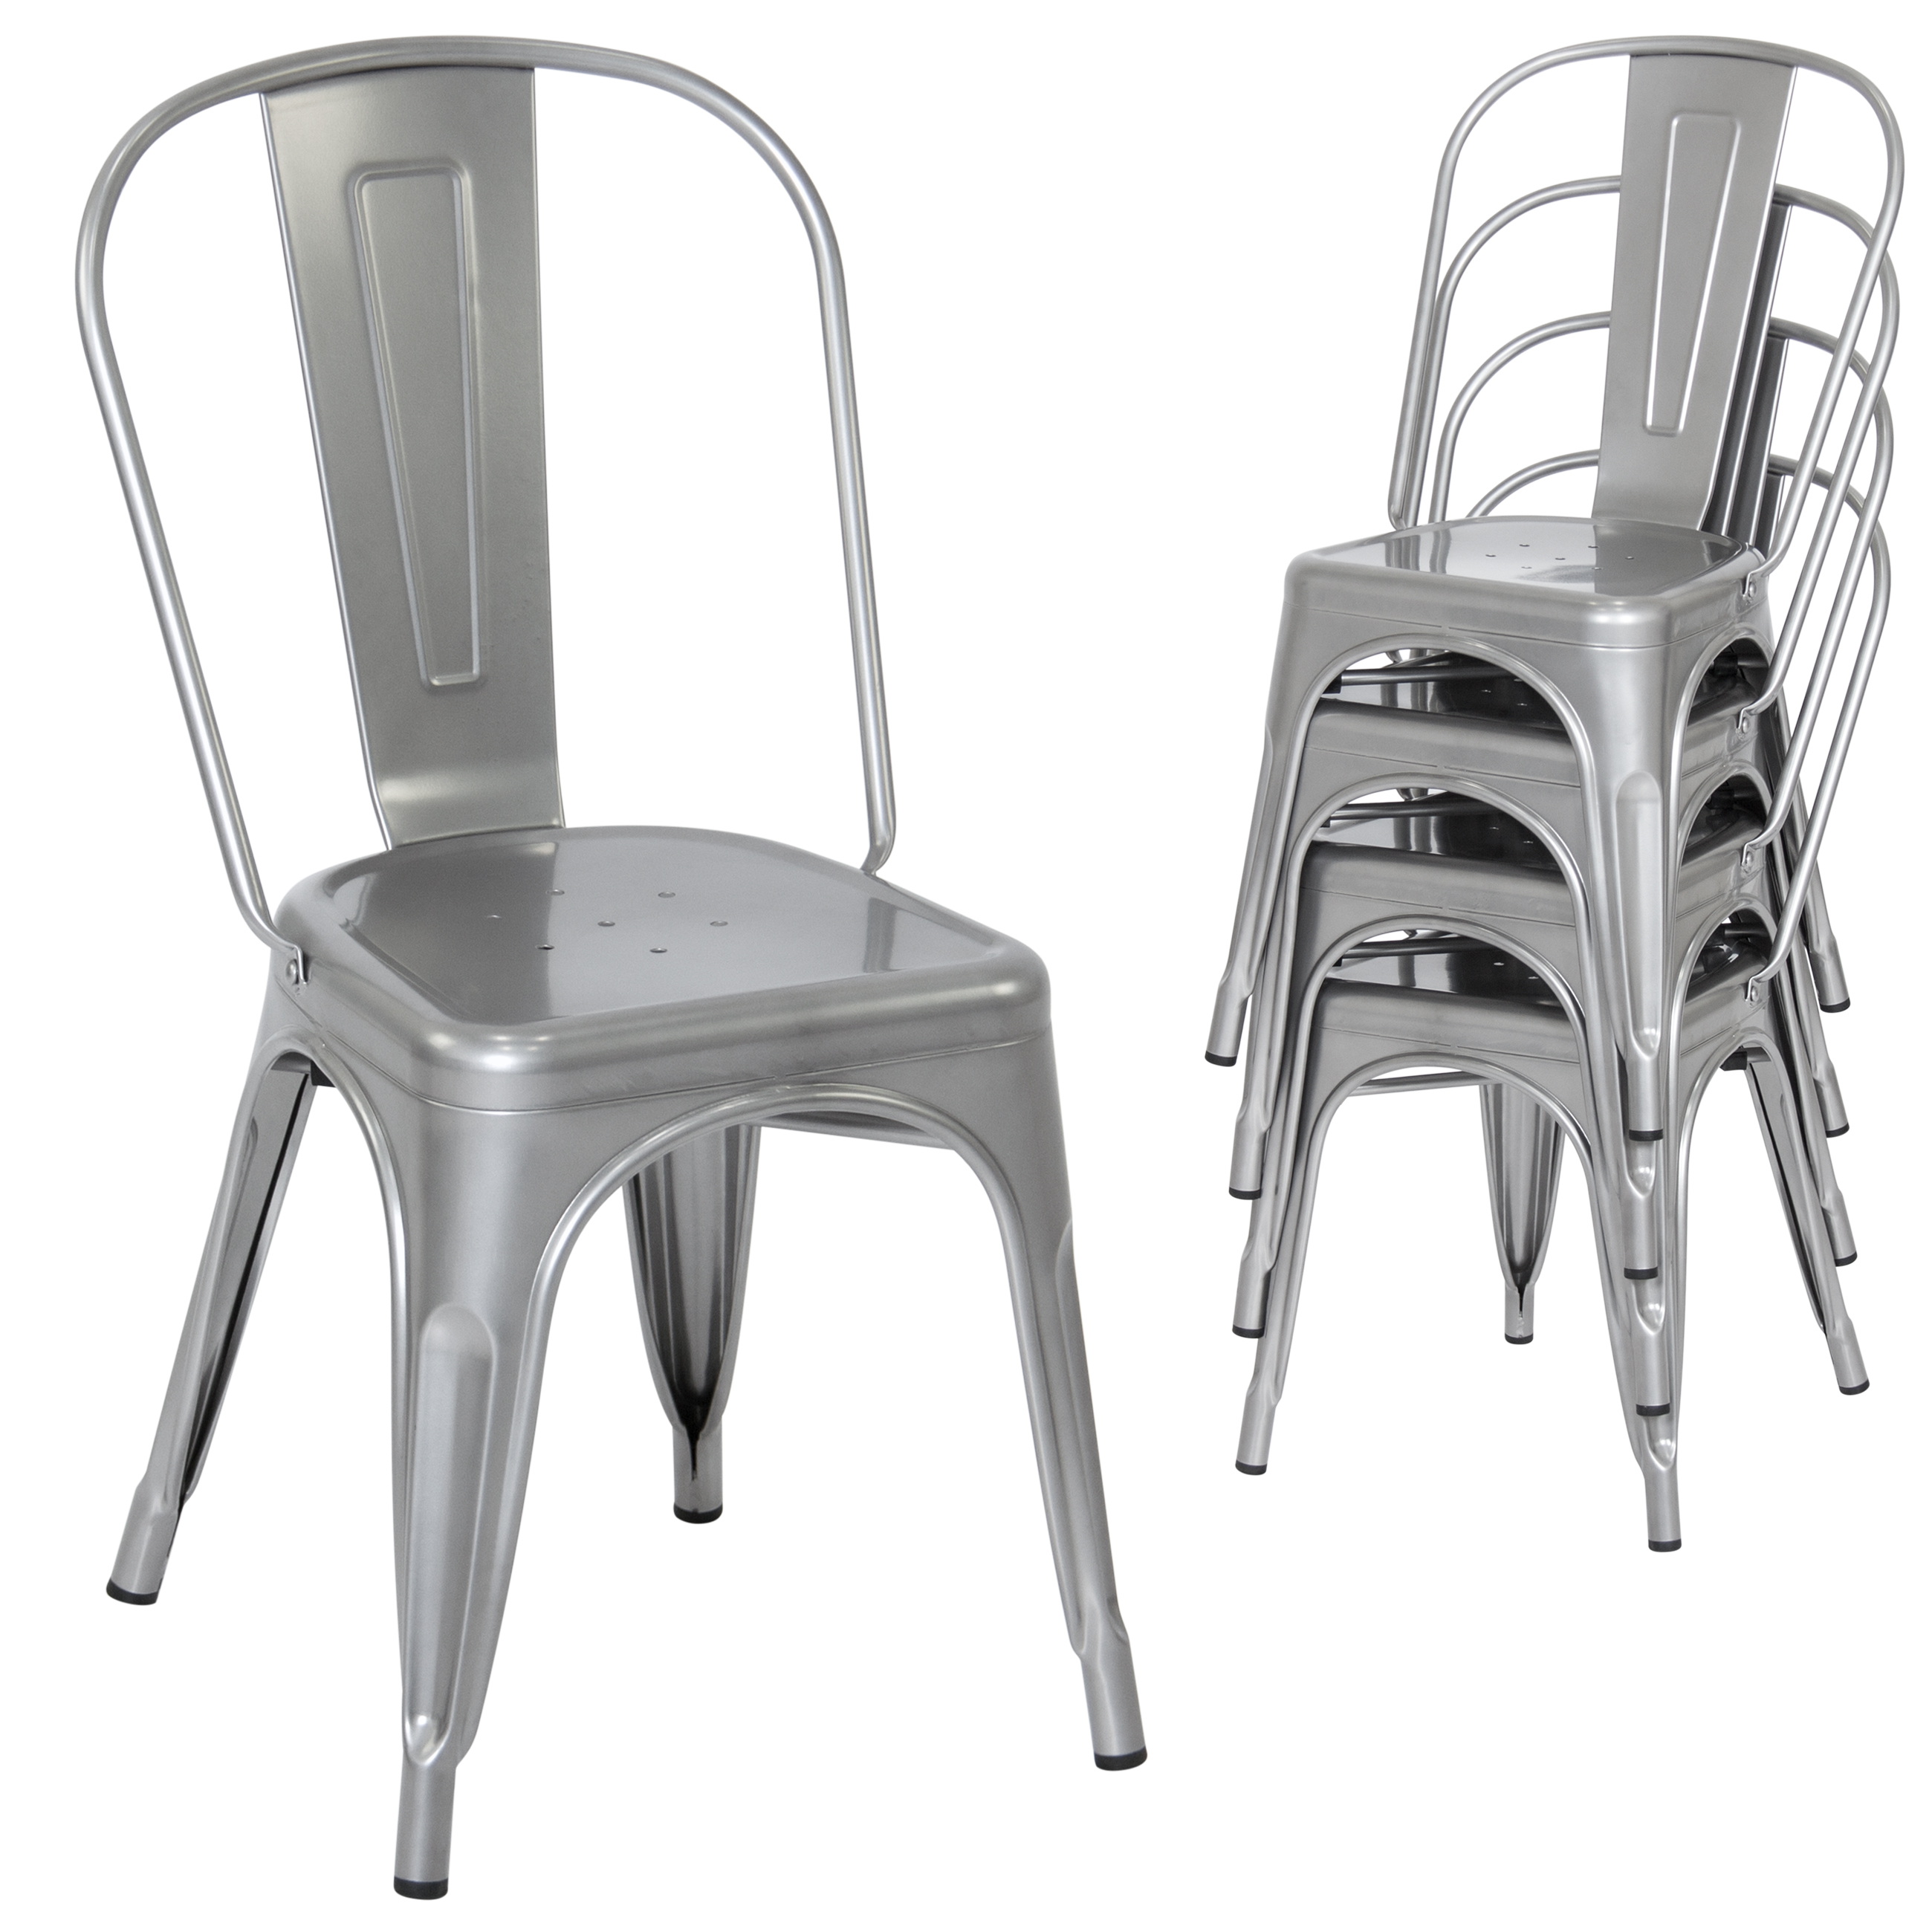 metal dining room chair | Set of 4 Stacking Metal Industrial Style Dining Chairs ...